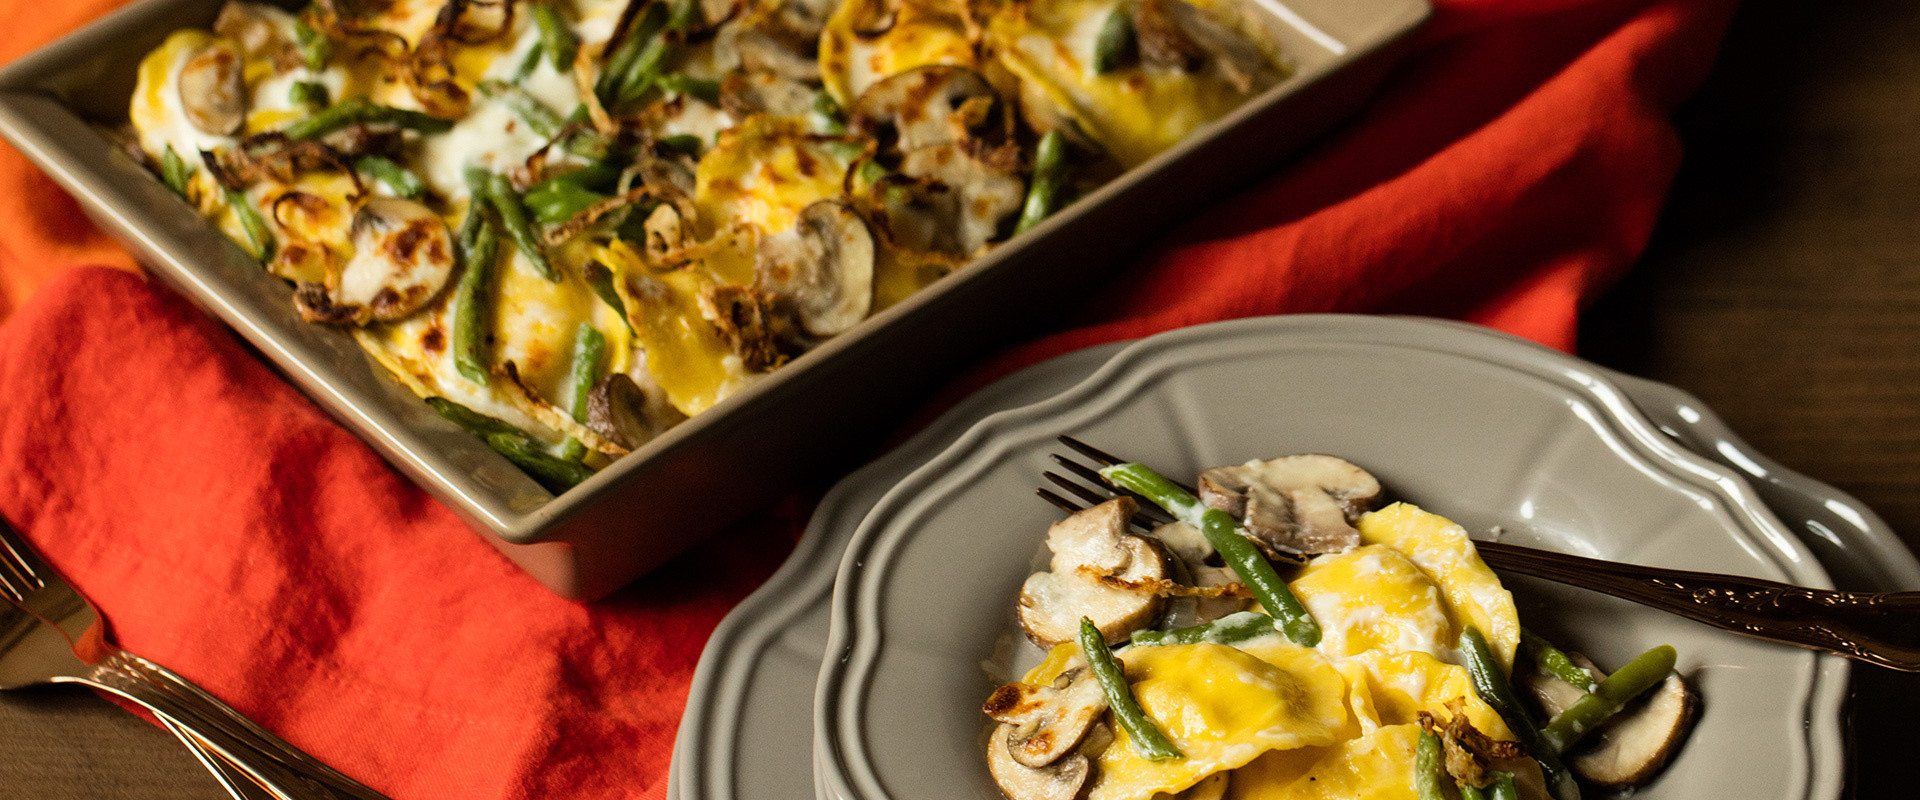 MUSHROOMS_RAVIOLI_GREENBEAN_CASSEROLE_desktop.jpg